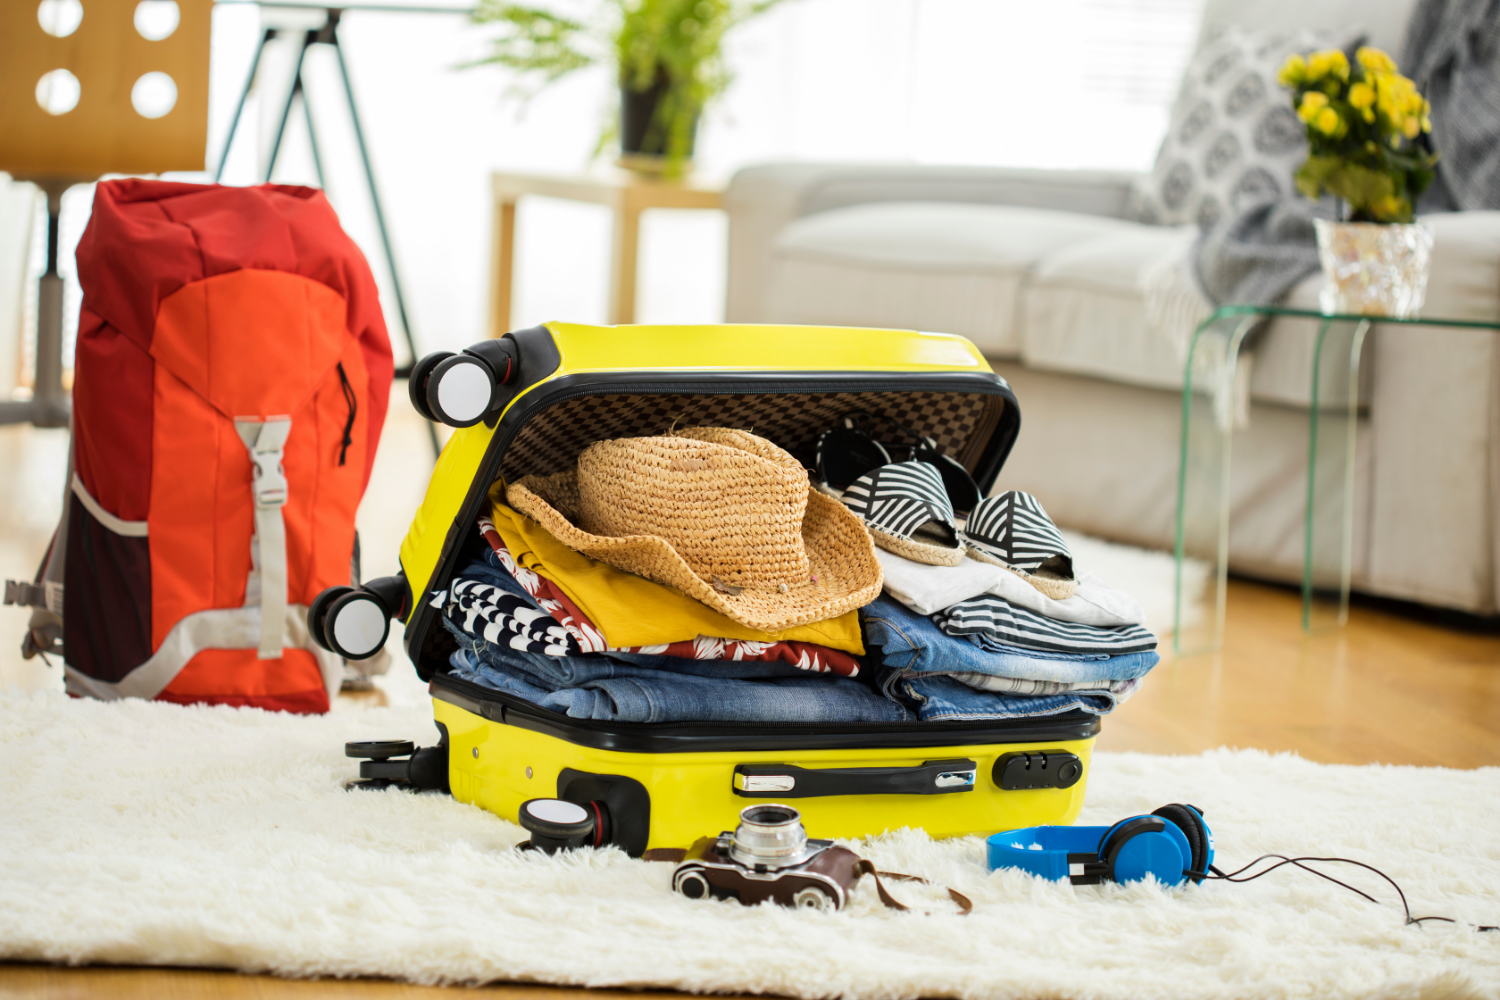 Preparing for a holiday - packing a suitcase